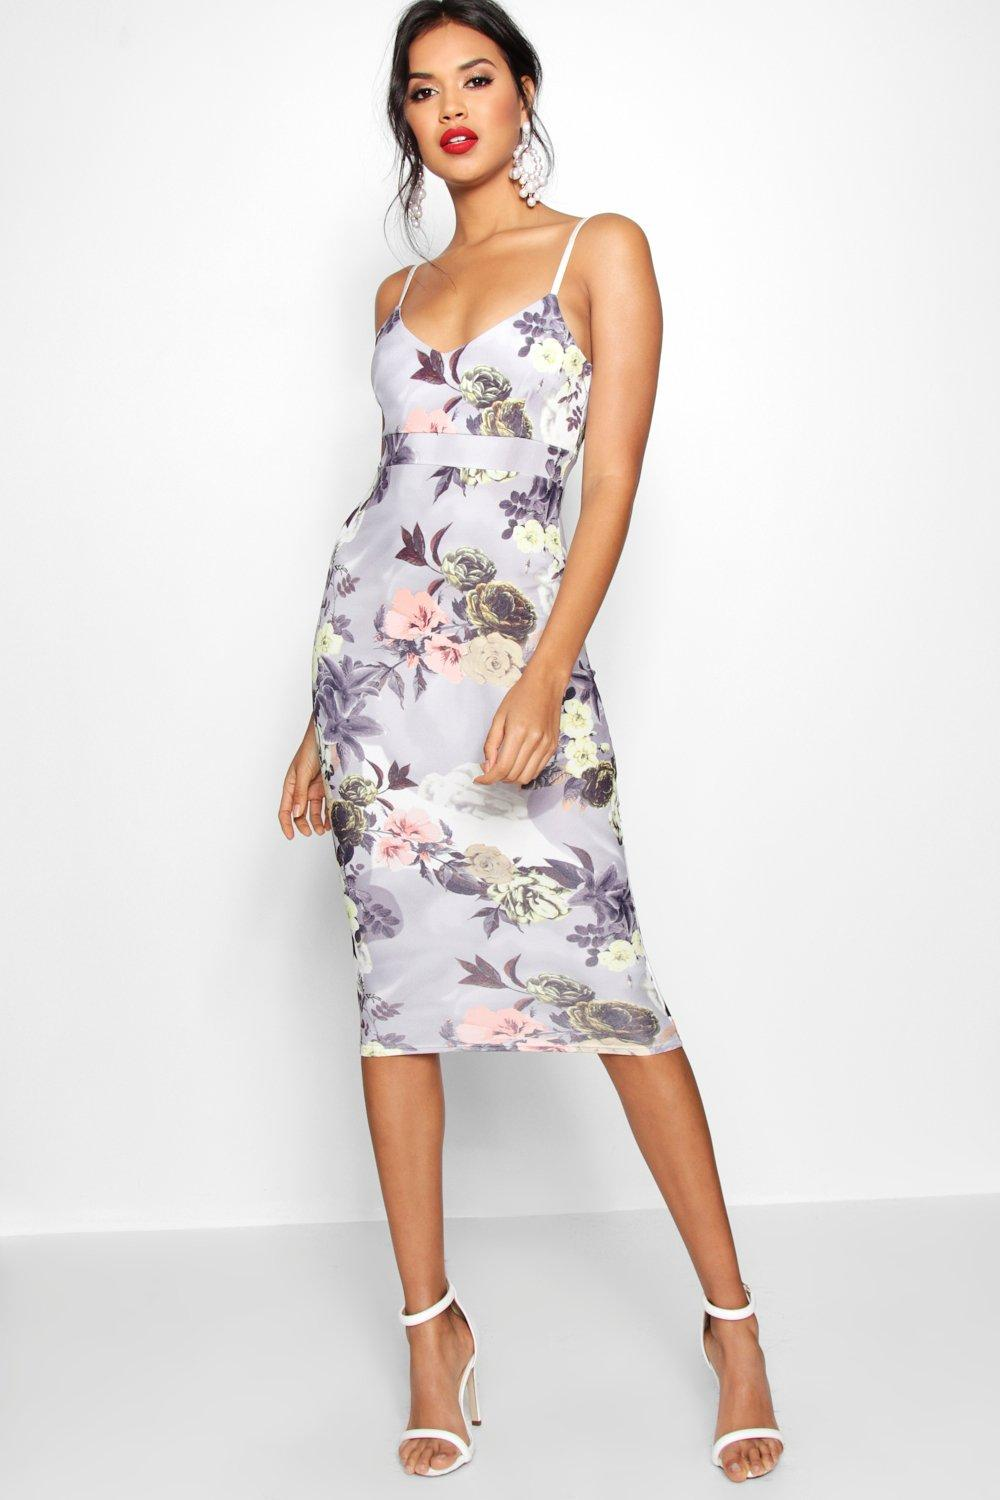 Coreline floral midi dress at for Boohoo dresses for weddings